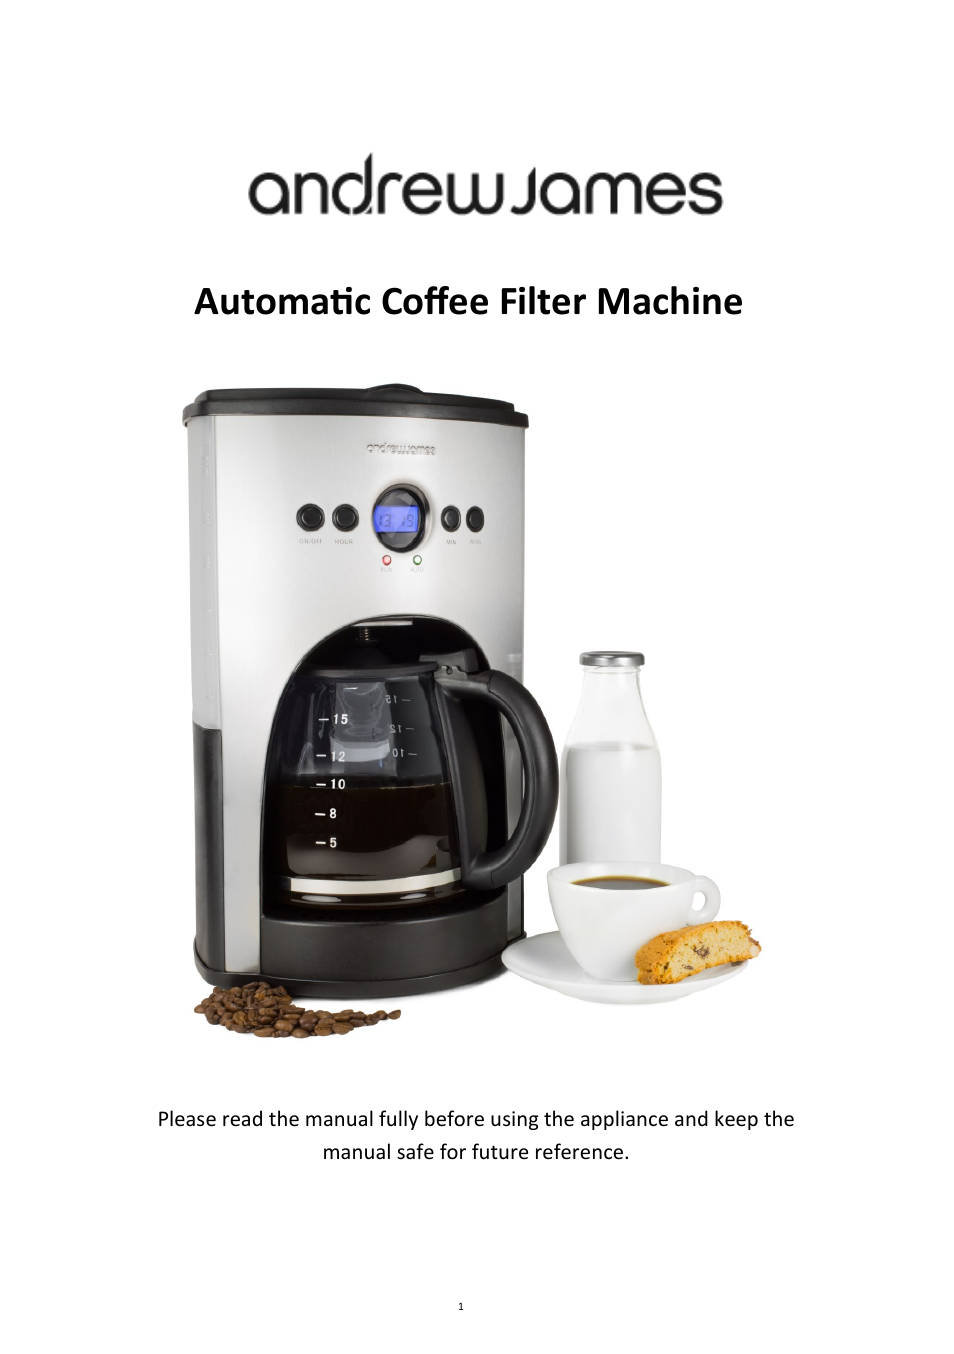 Andrew James Aj000002 1100w Automatic Filter Coffee Machine